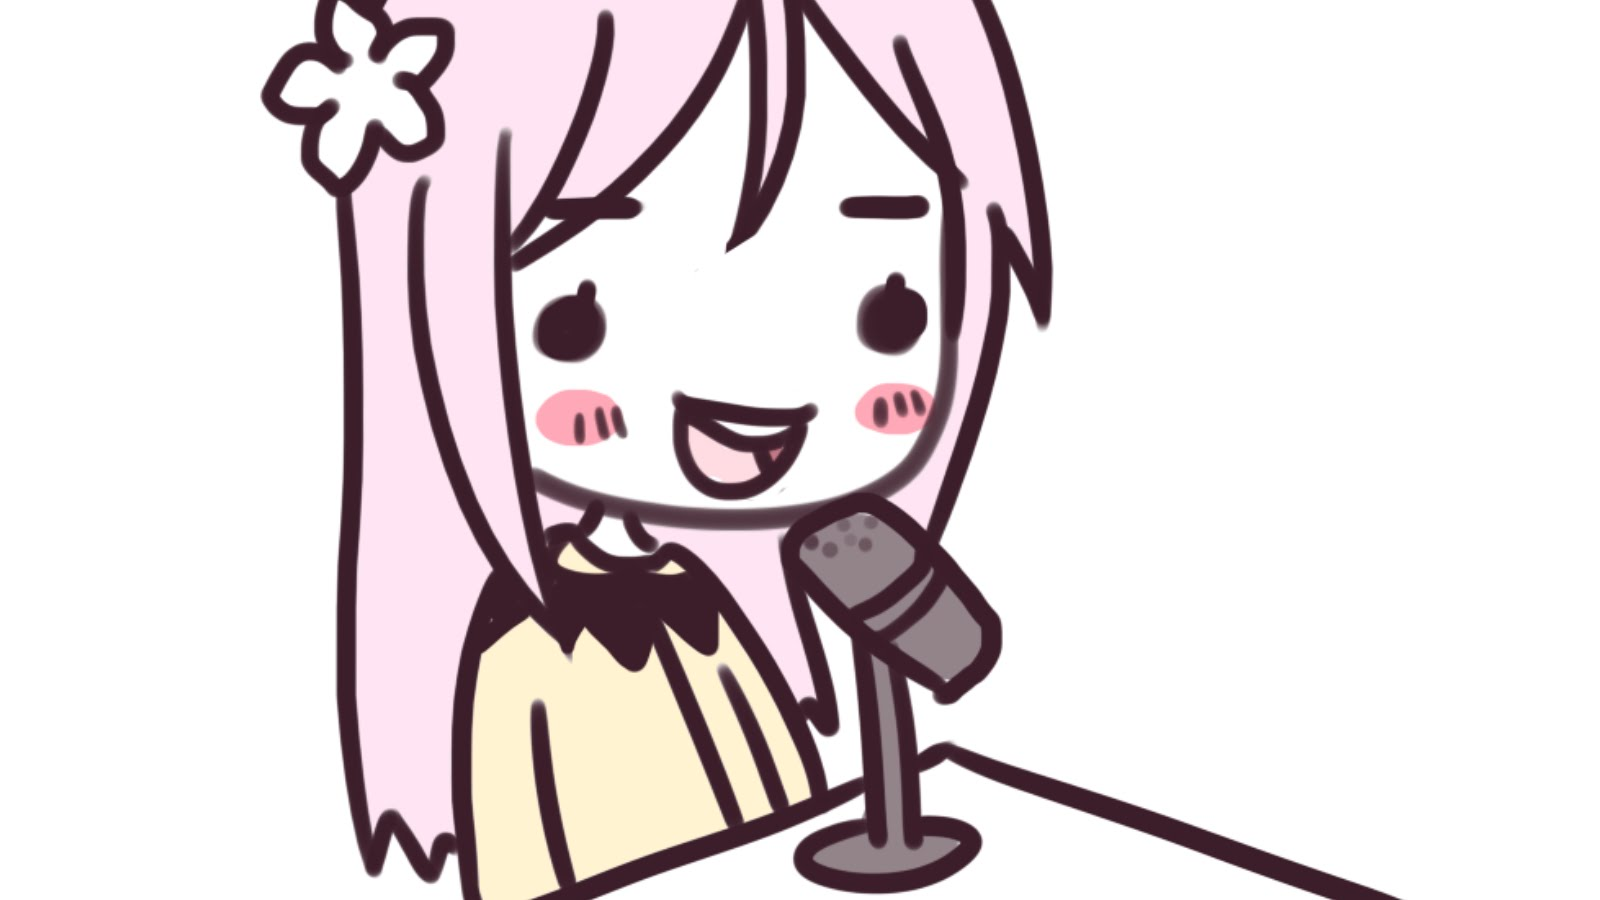 Voice clipart deep voice. The deepest i can